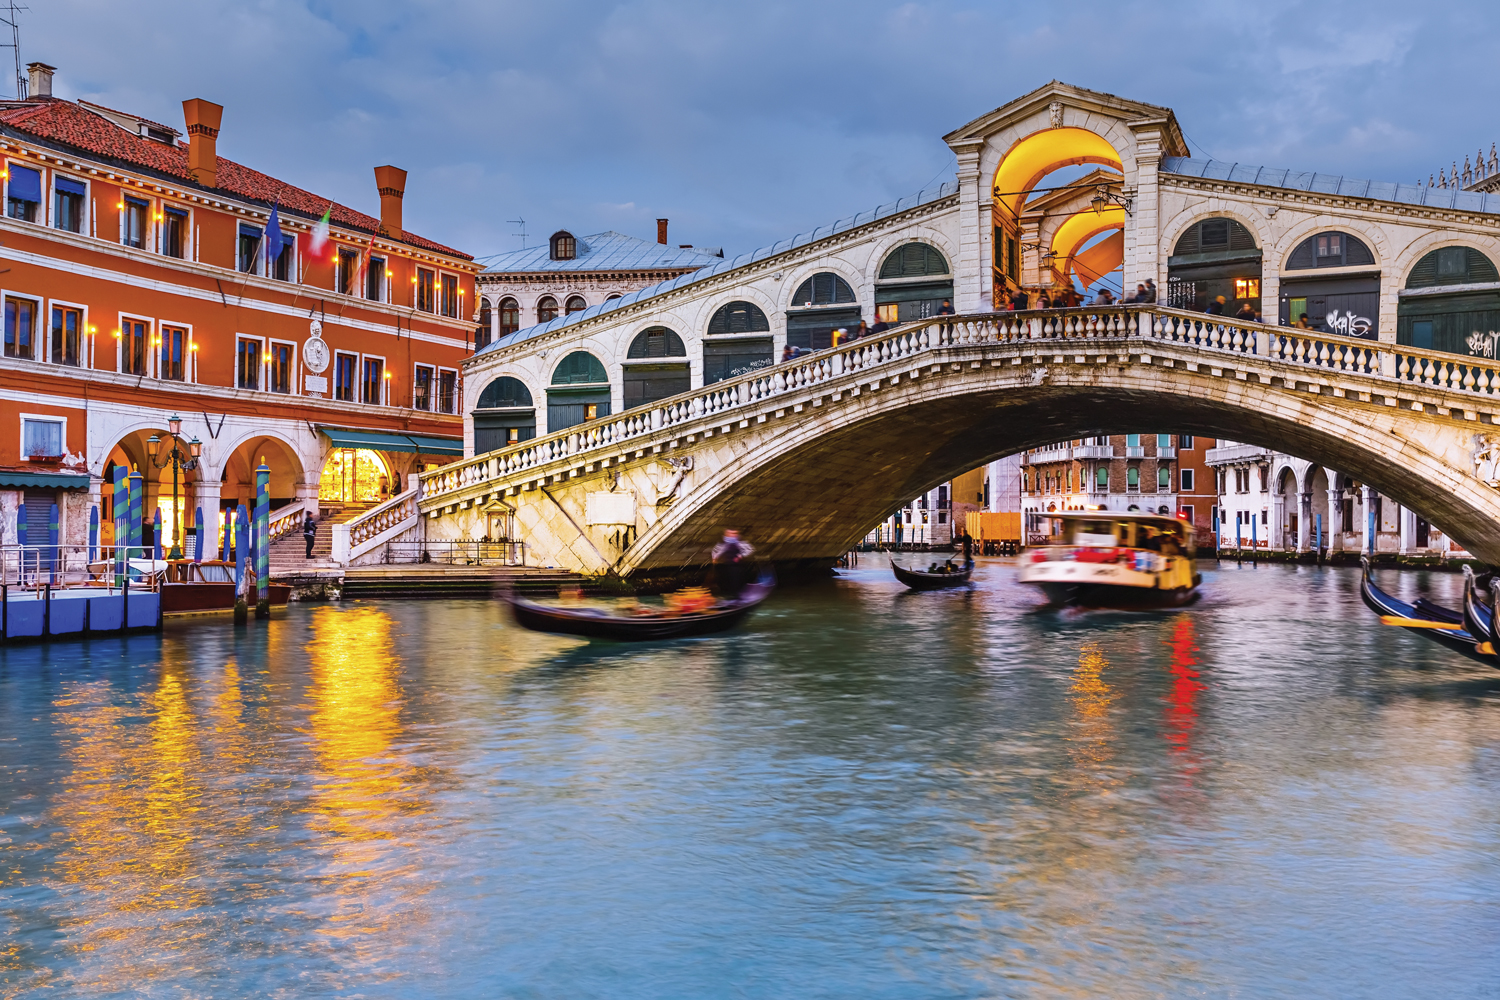 http://extranet.jetlinetravel.info/express-images/Express_Europe-Italy-Venice-Generic10.jpg